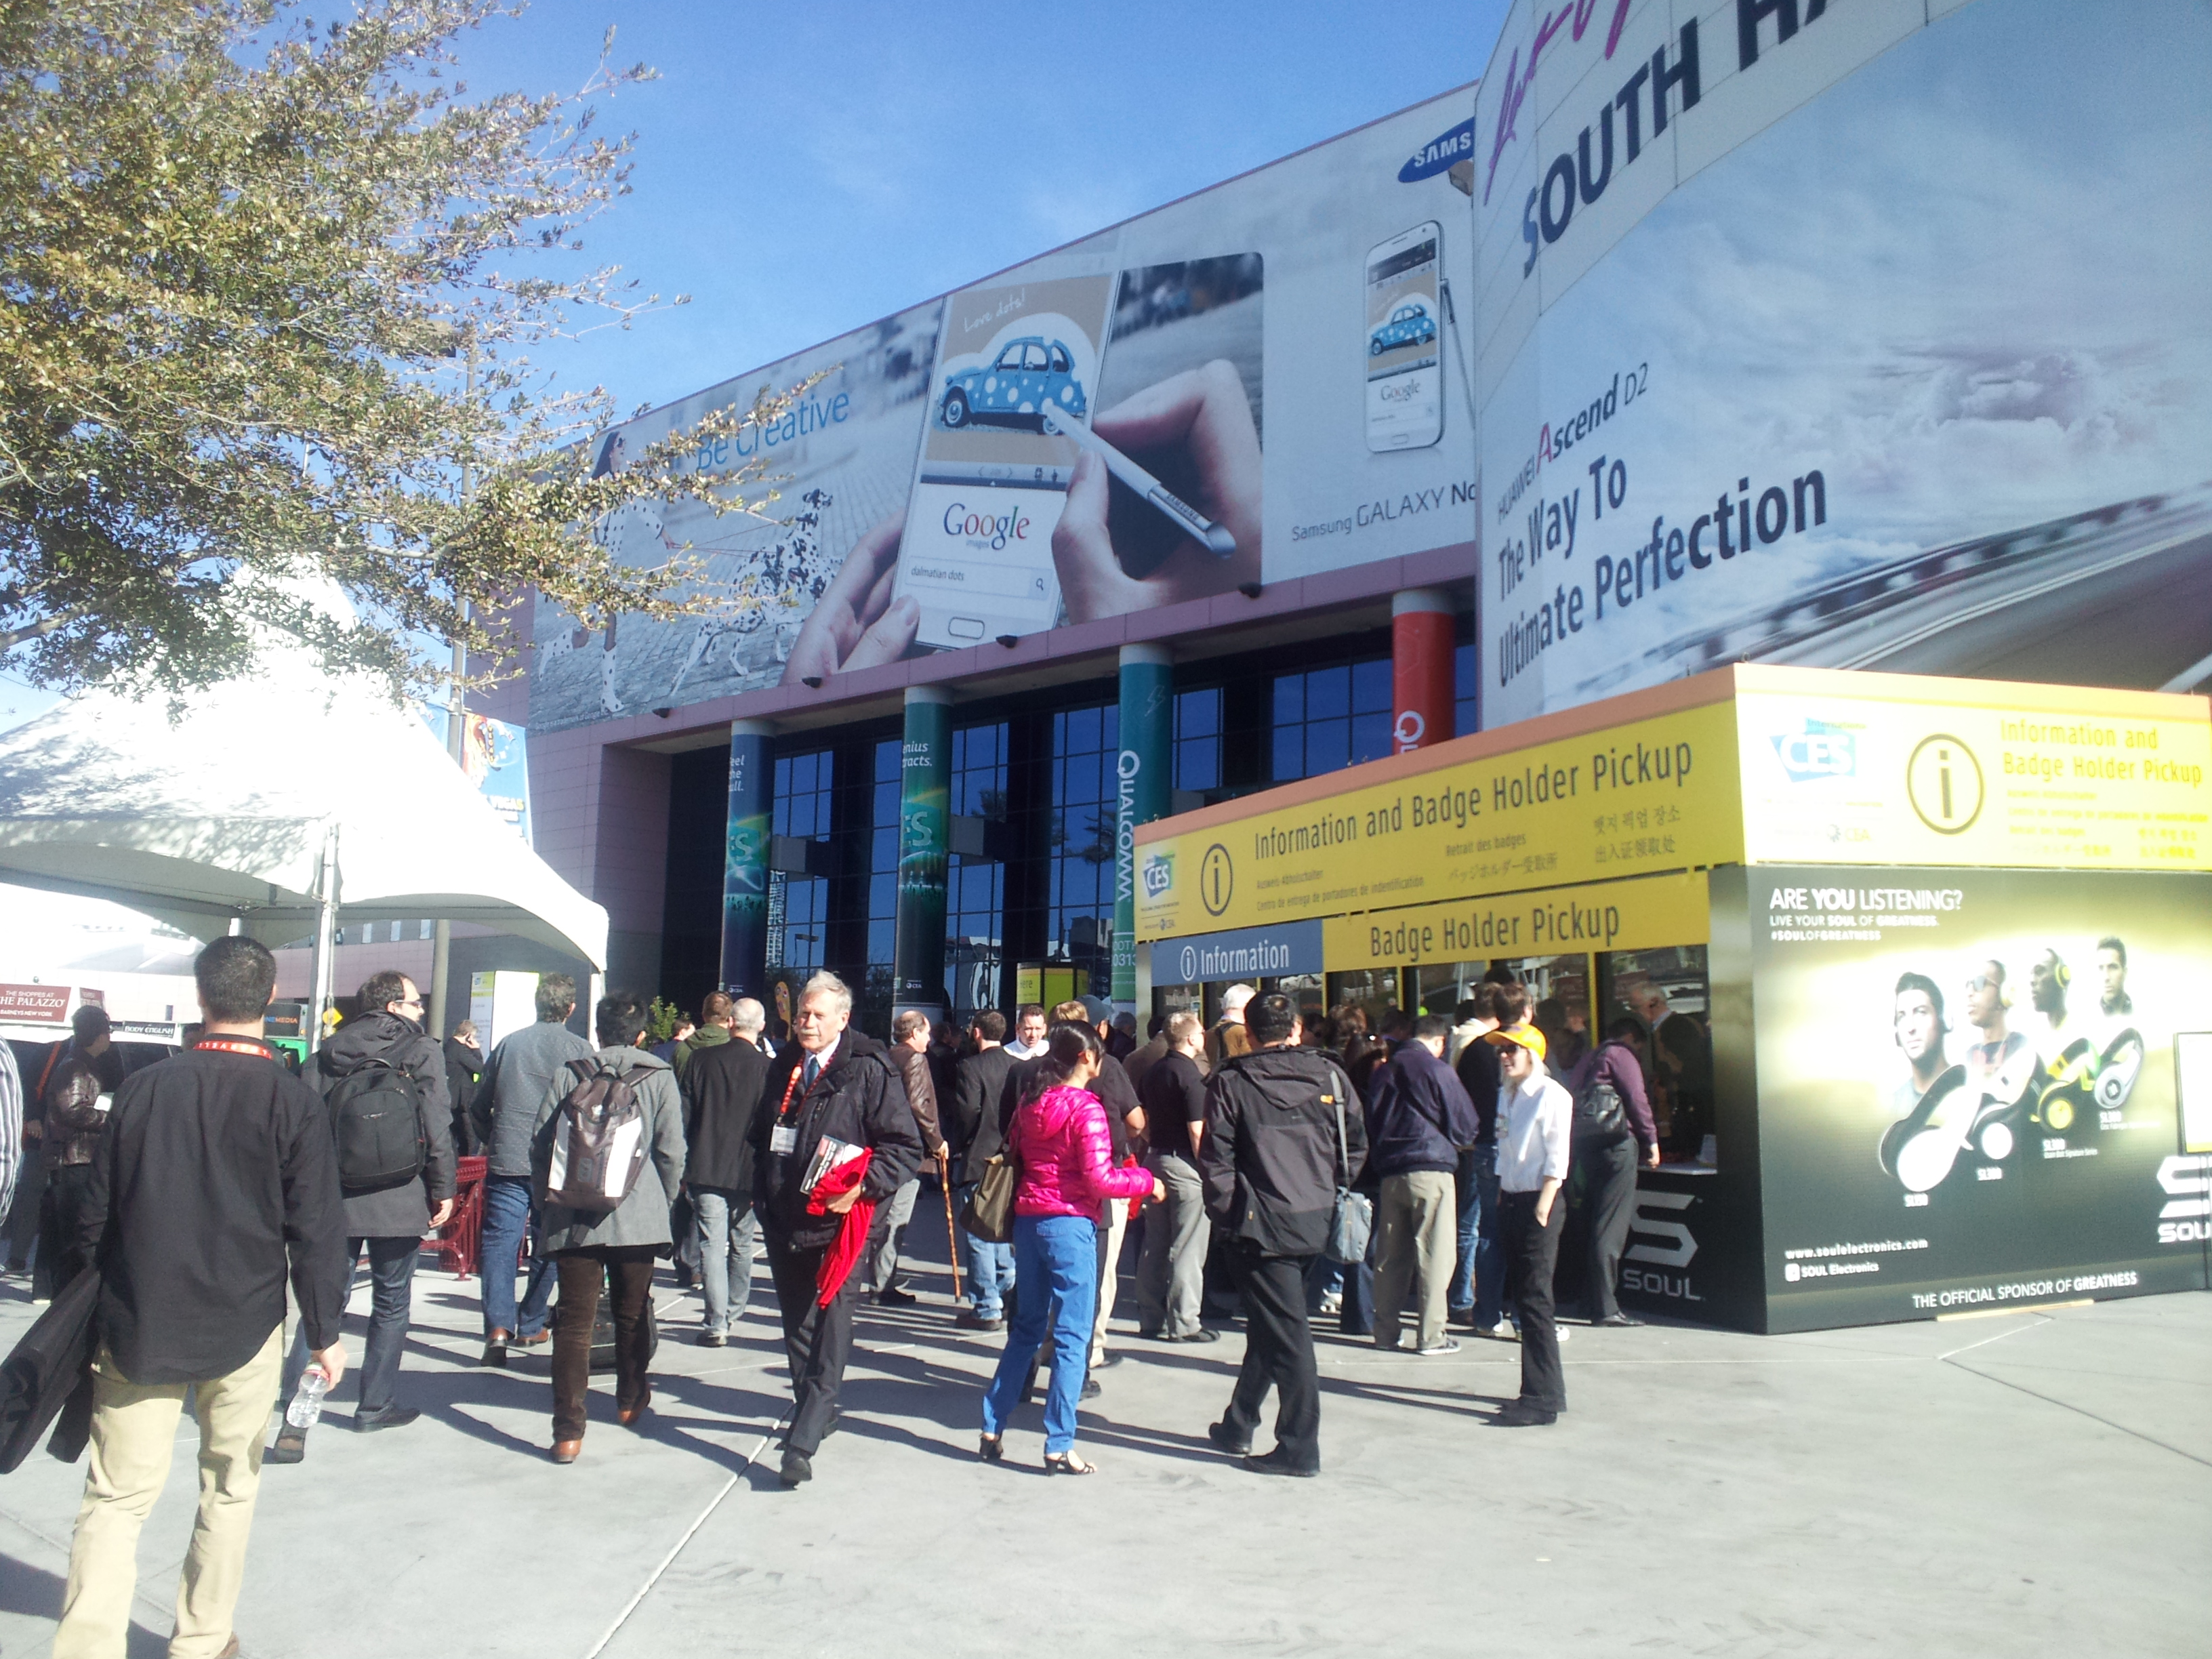 Fusion Web at CES 2013 Part 1